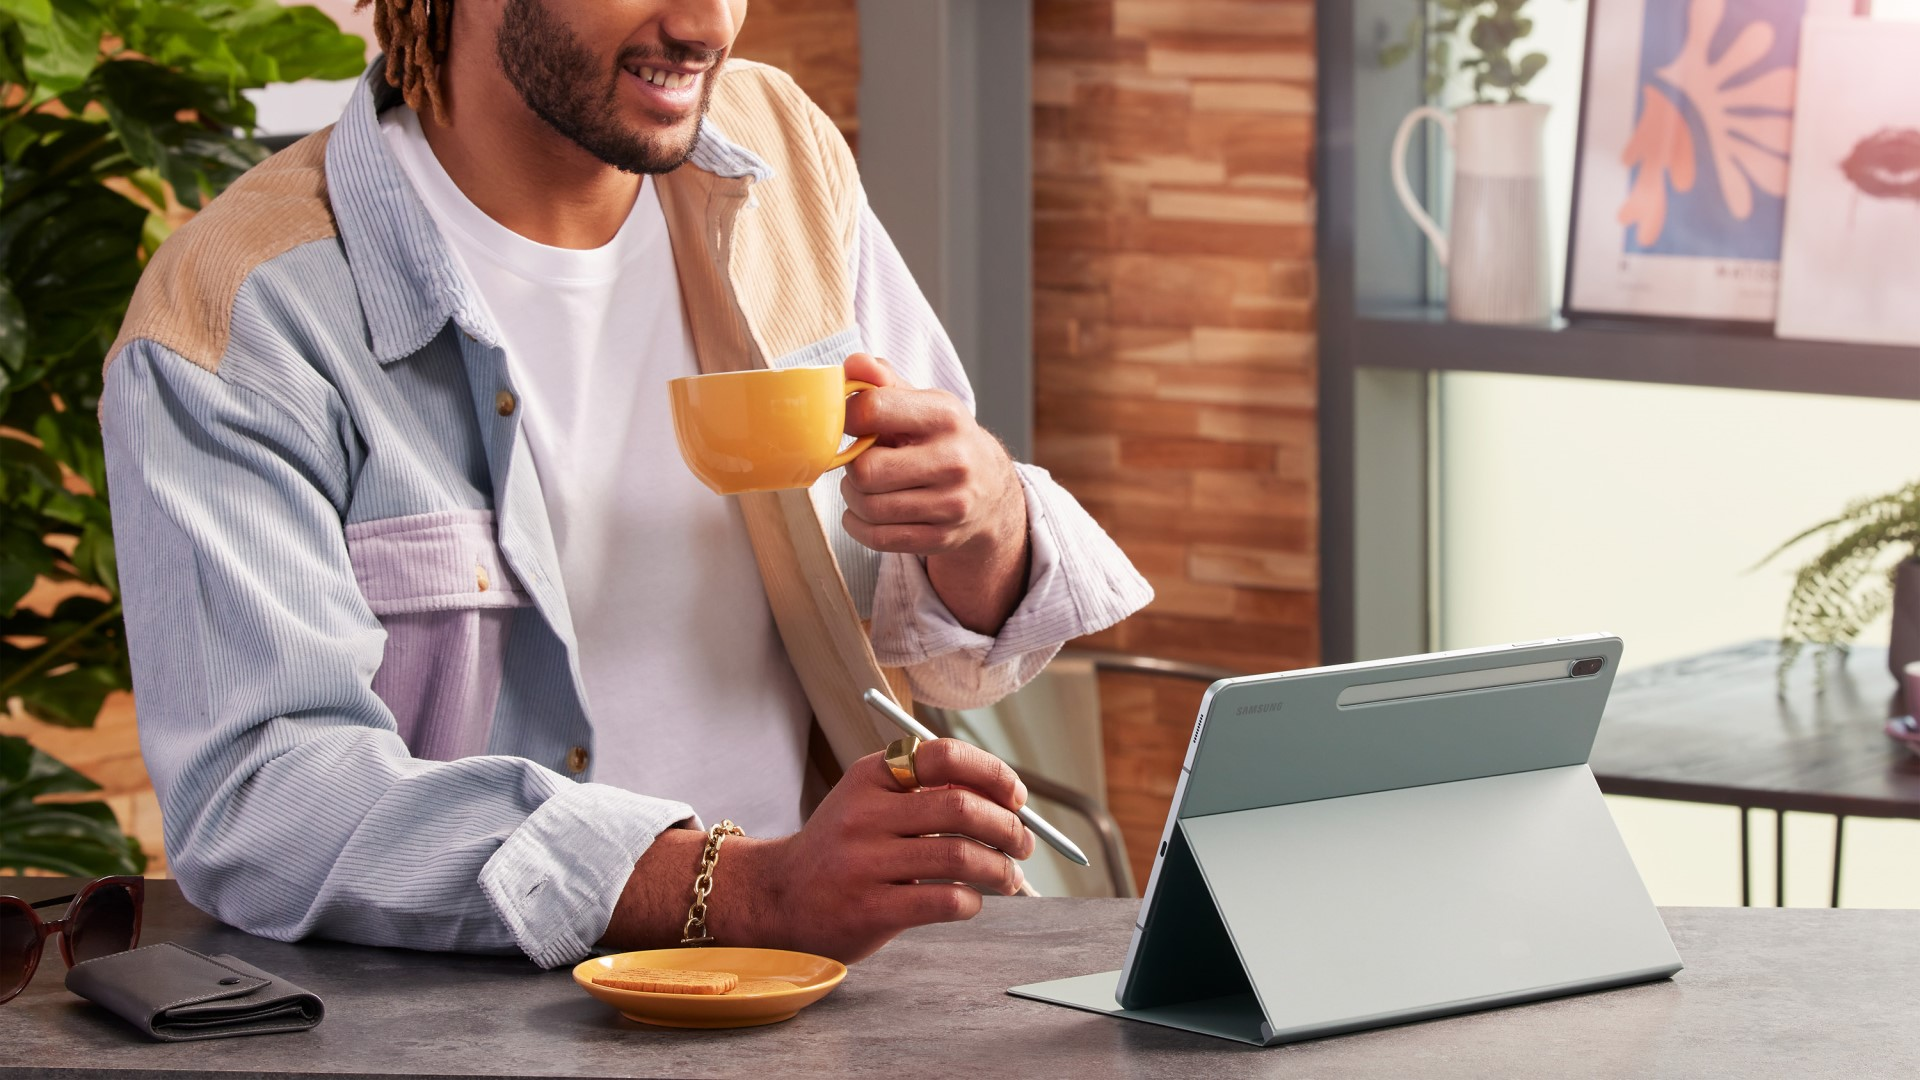 Man drinking from mug, smiling while using Samsung Galaxy Tab S7 FE and S Pen